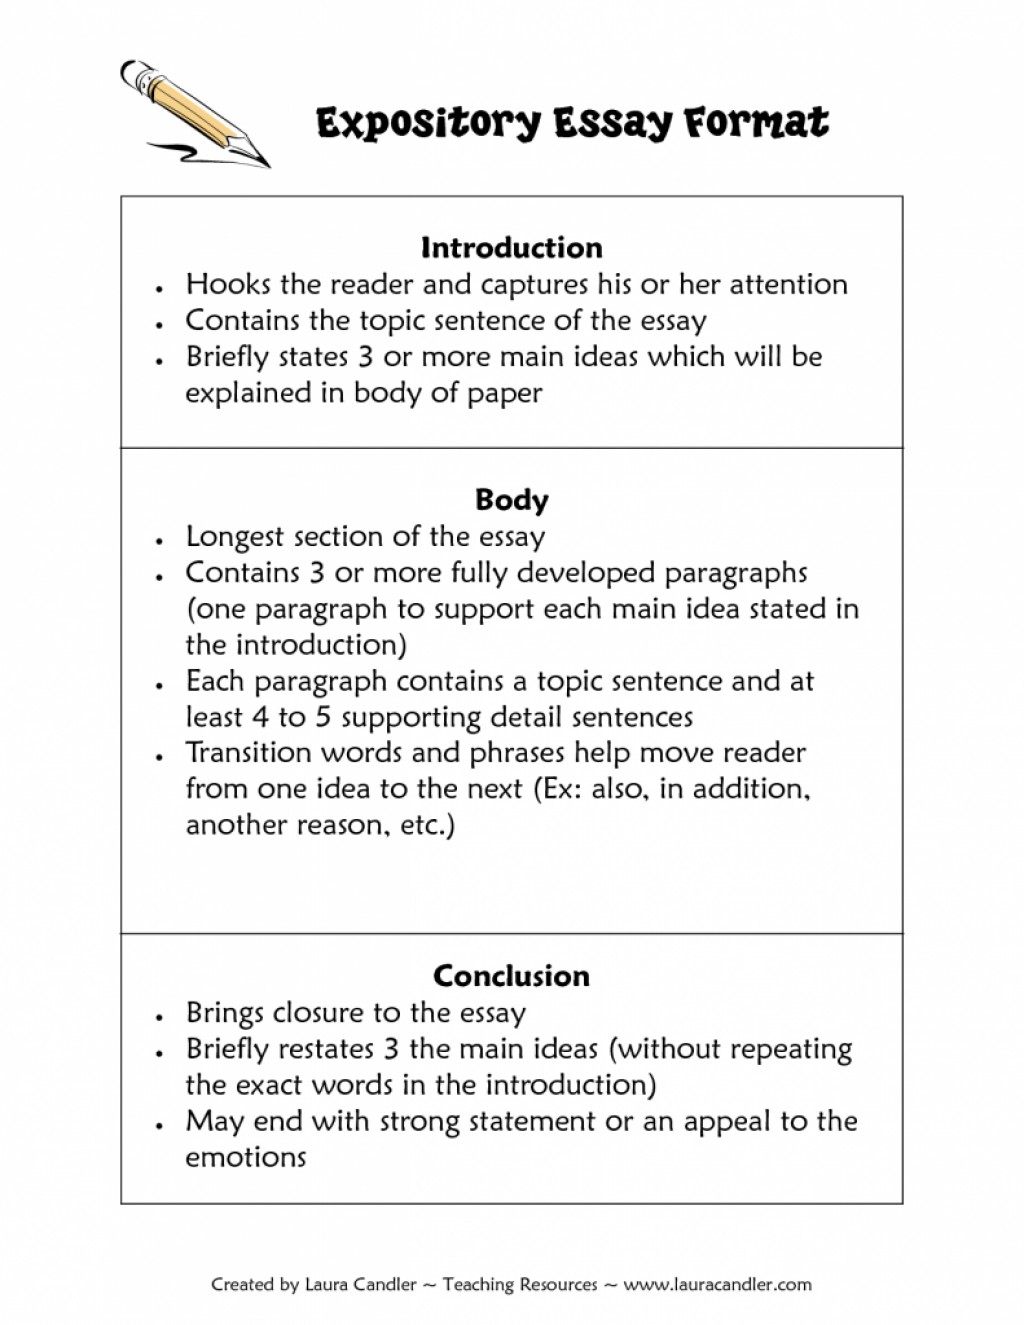 014 Expository Essay Outline Example Surprising Explanatory Topics 4th Grade Fourth For High School Students Large